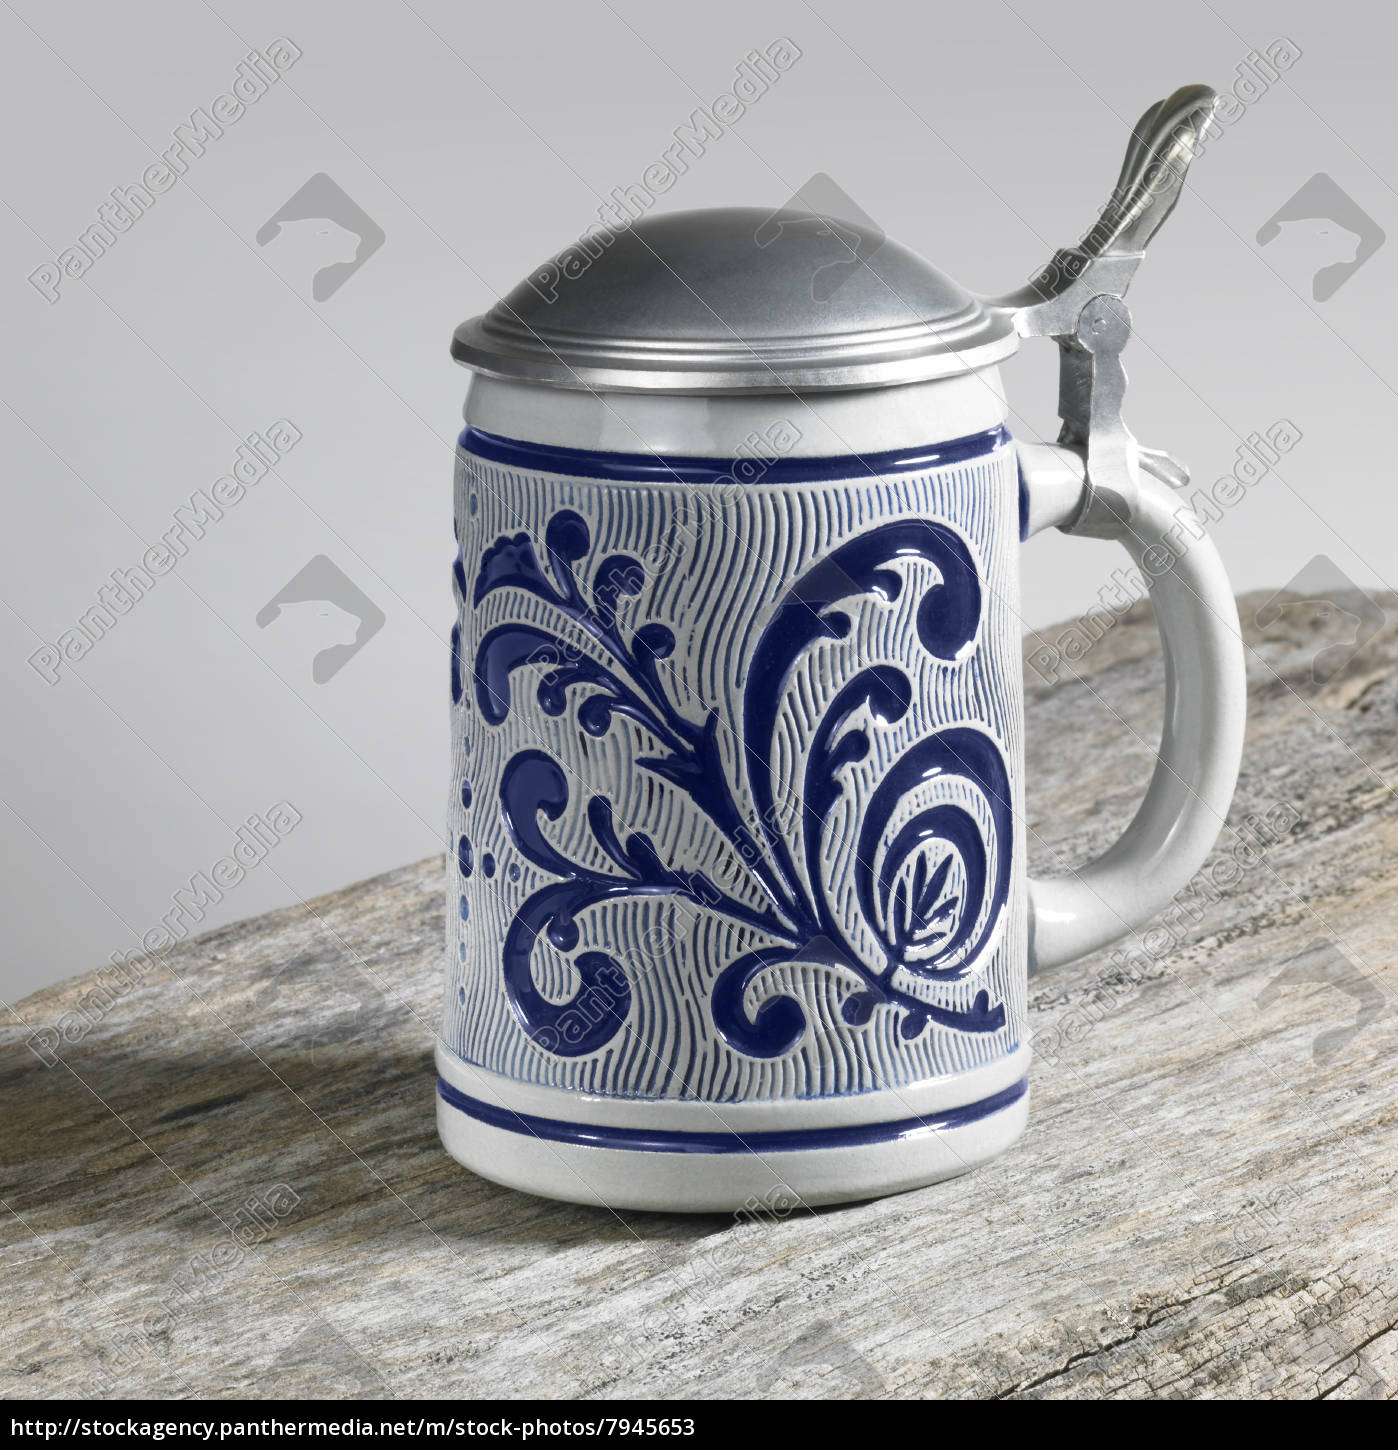 blue, decorated, stein, on, wooden, surface - 7945653